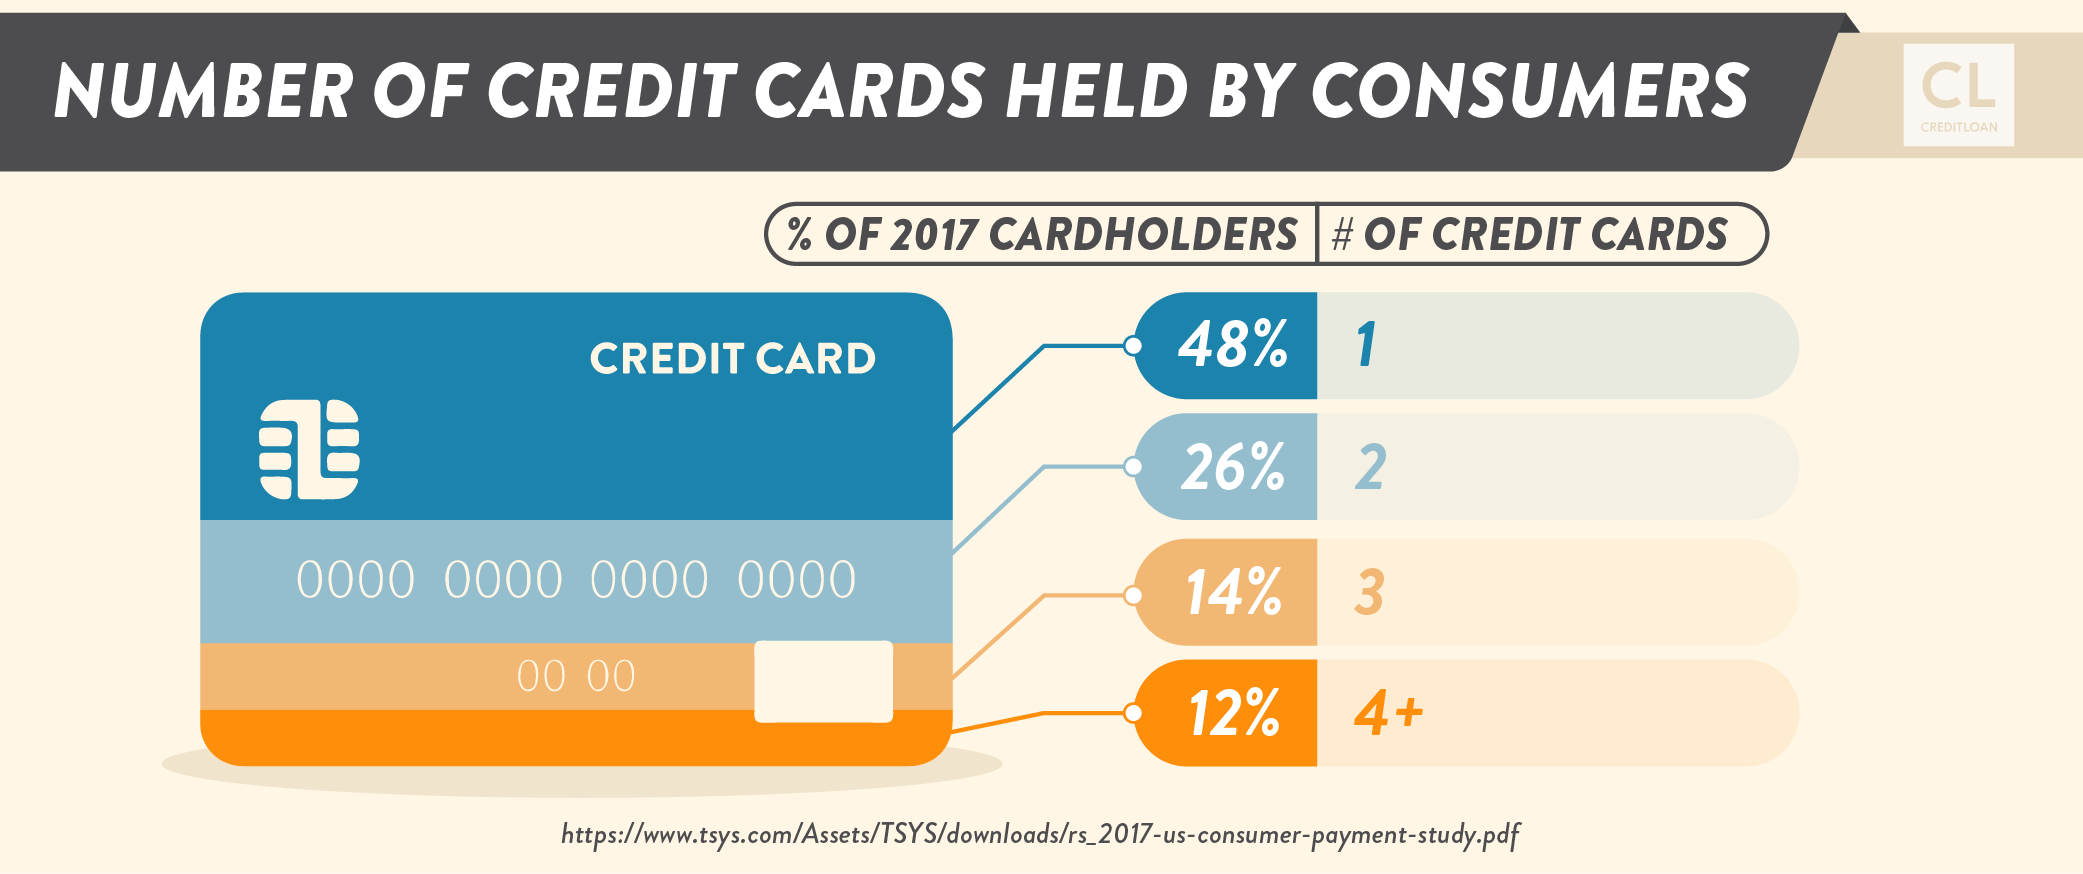 2017 Number of Credit Cards Held By Consumers